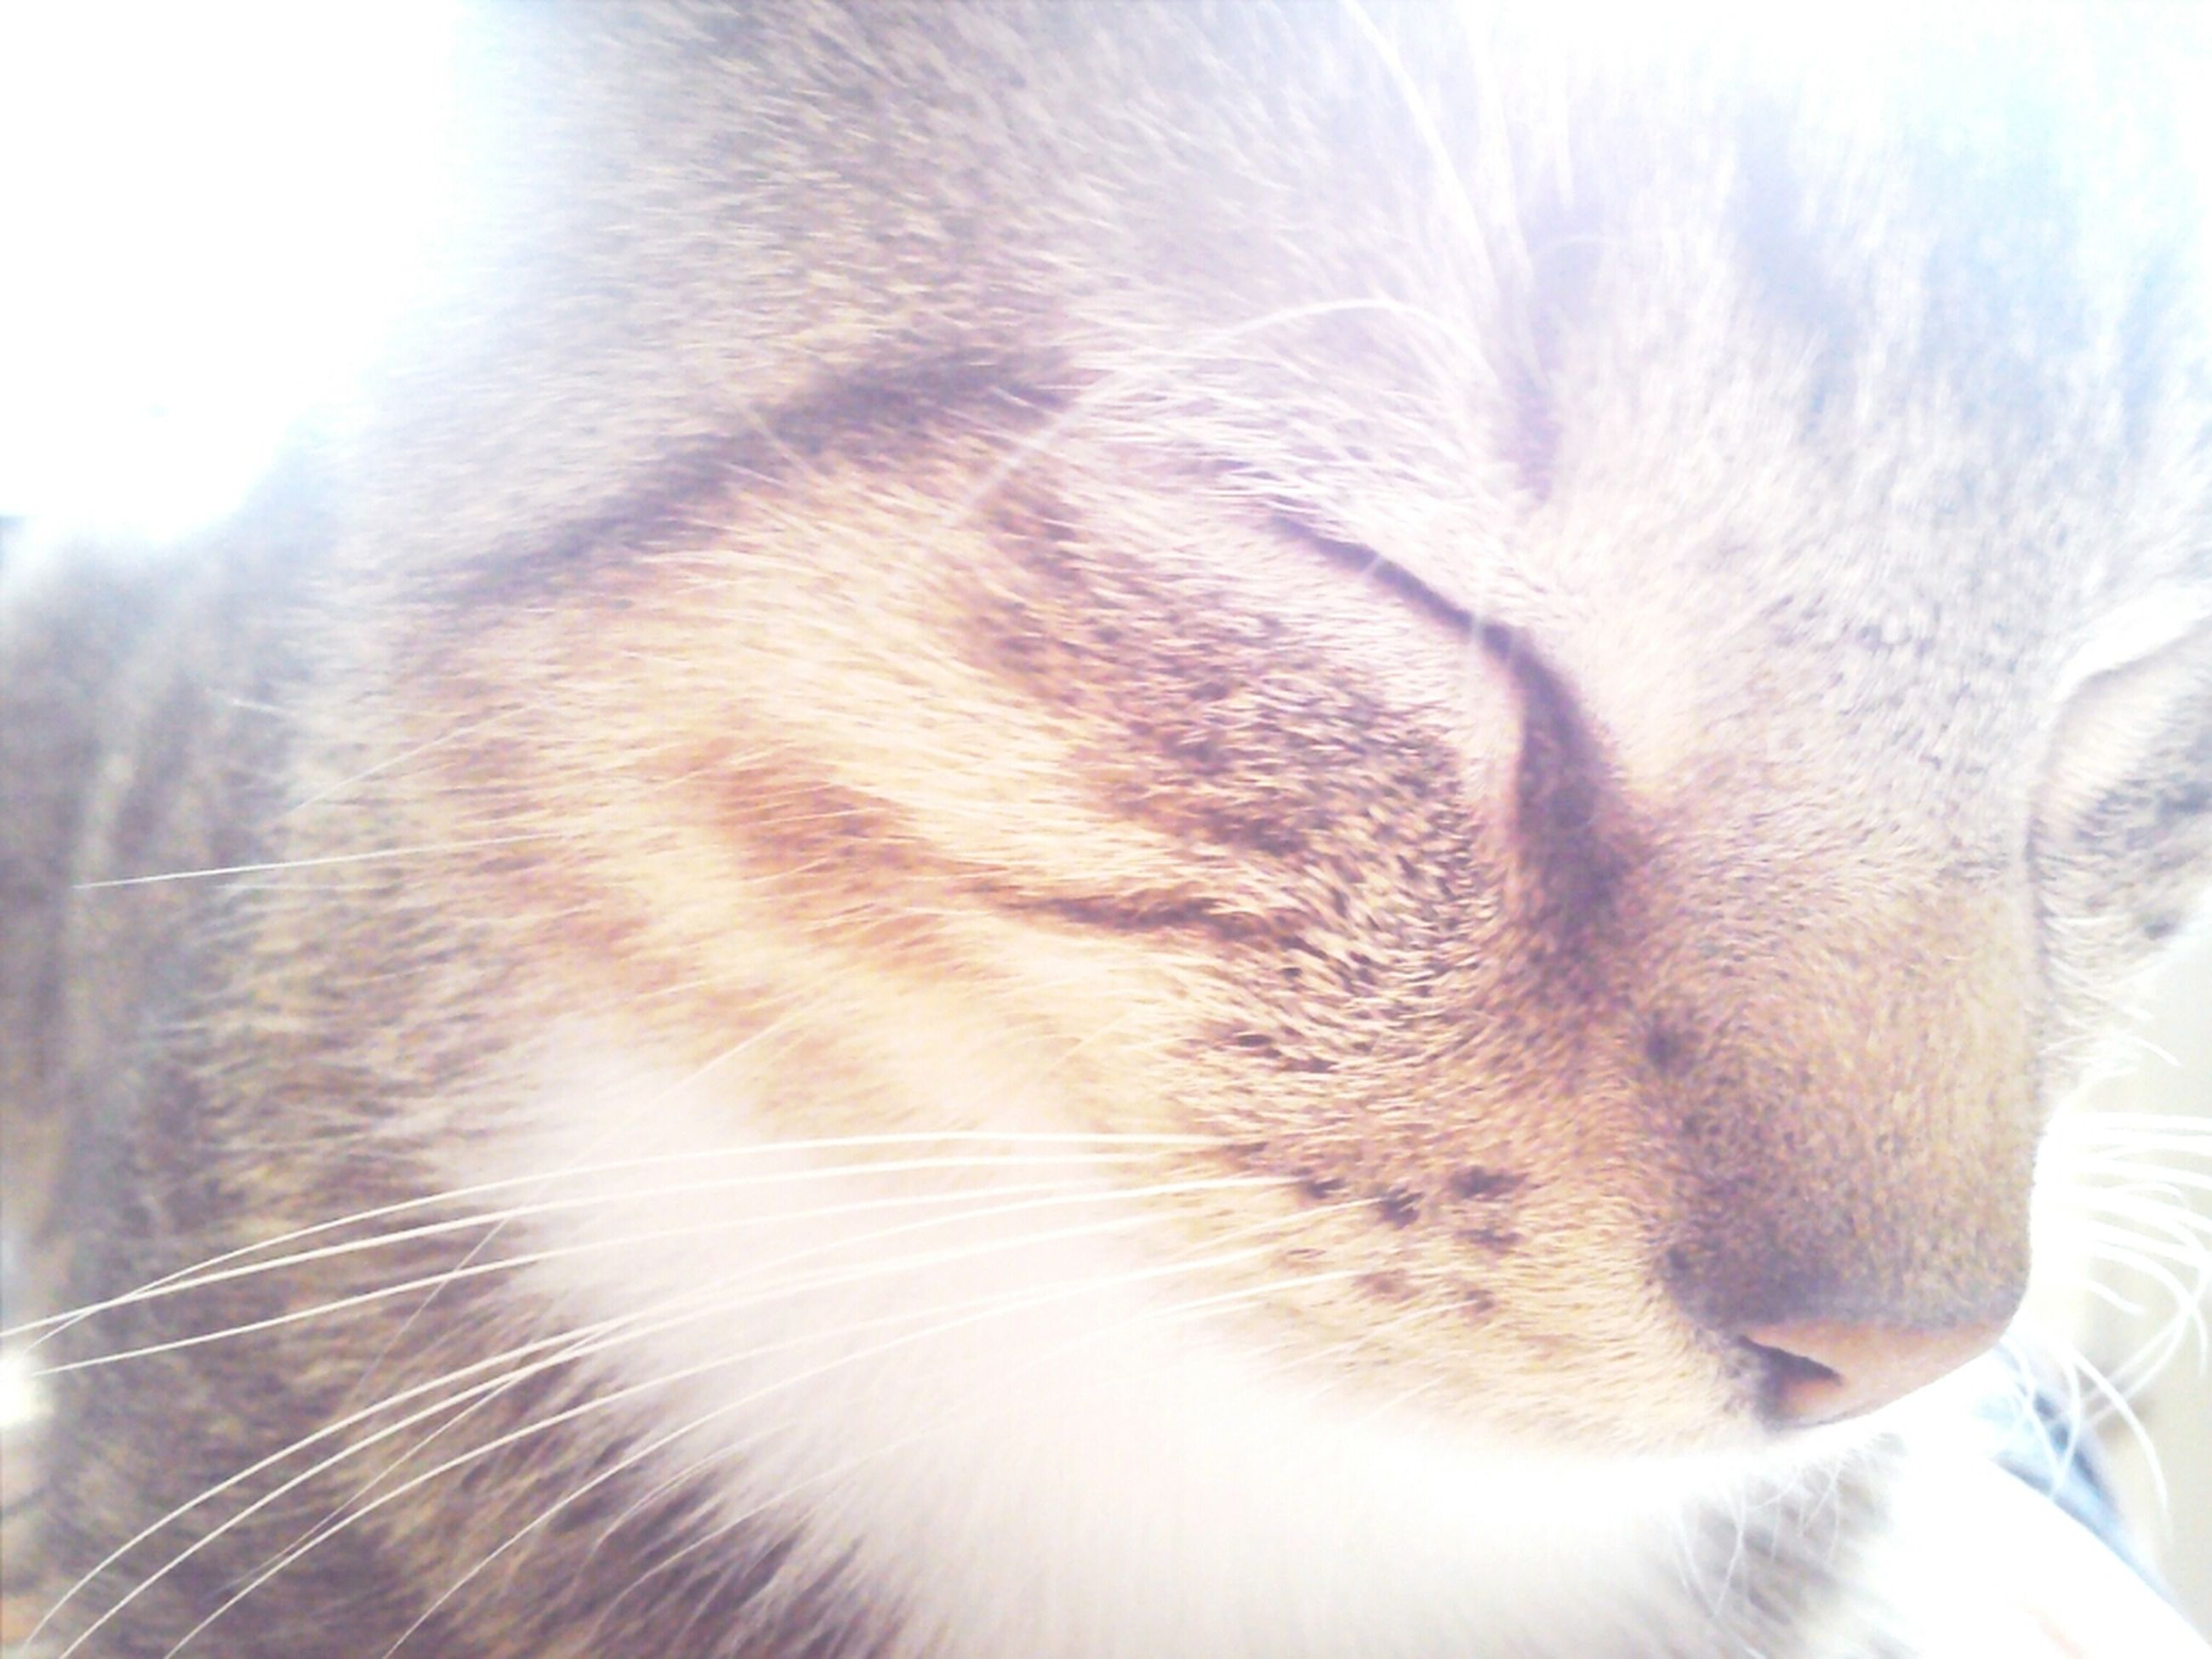 domestic animals, pets, one animal, animal themes, mammal, domestic cat, cat, feline, whisker, indoors, animal head, close-up, animal body part, part of, looking away, animal eye, no people, animal hair, relaxation, eyes closed